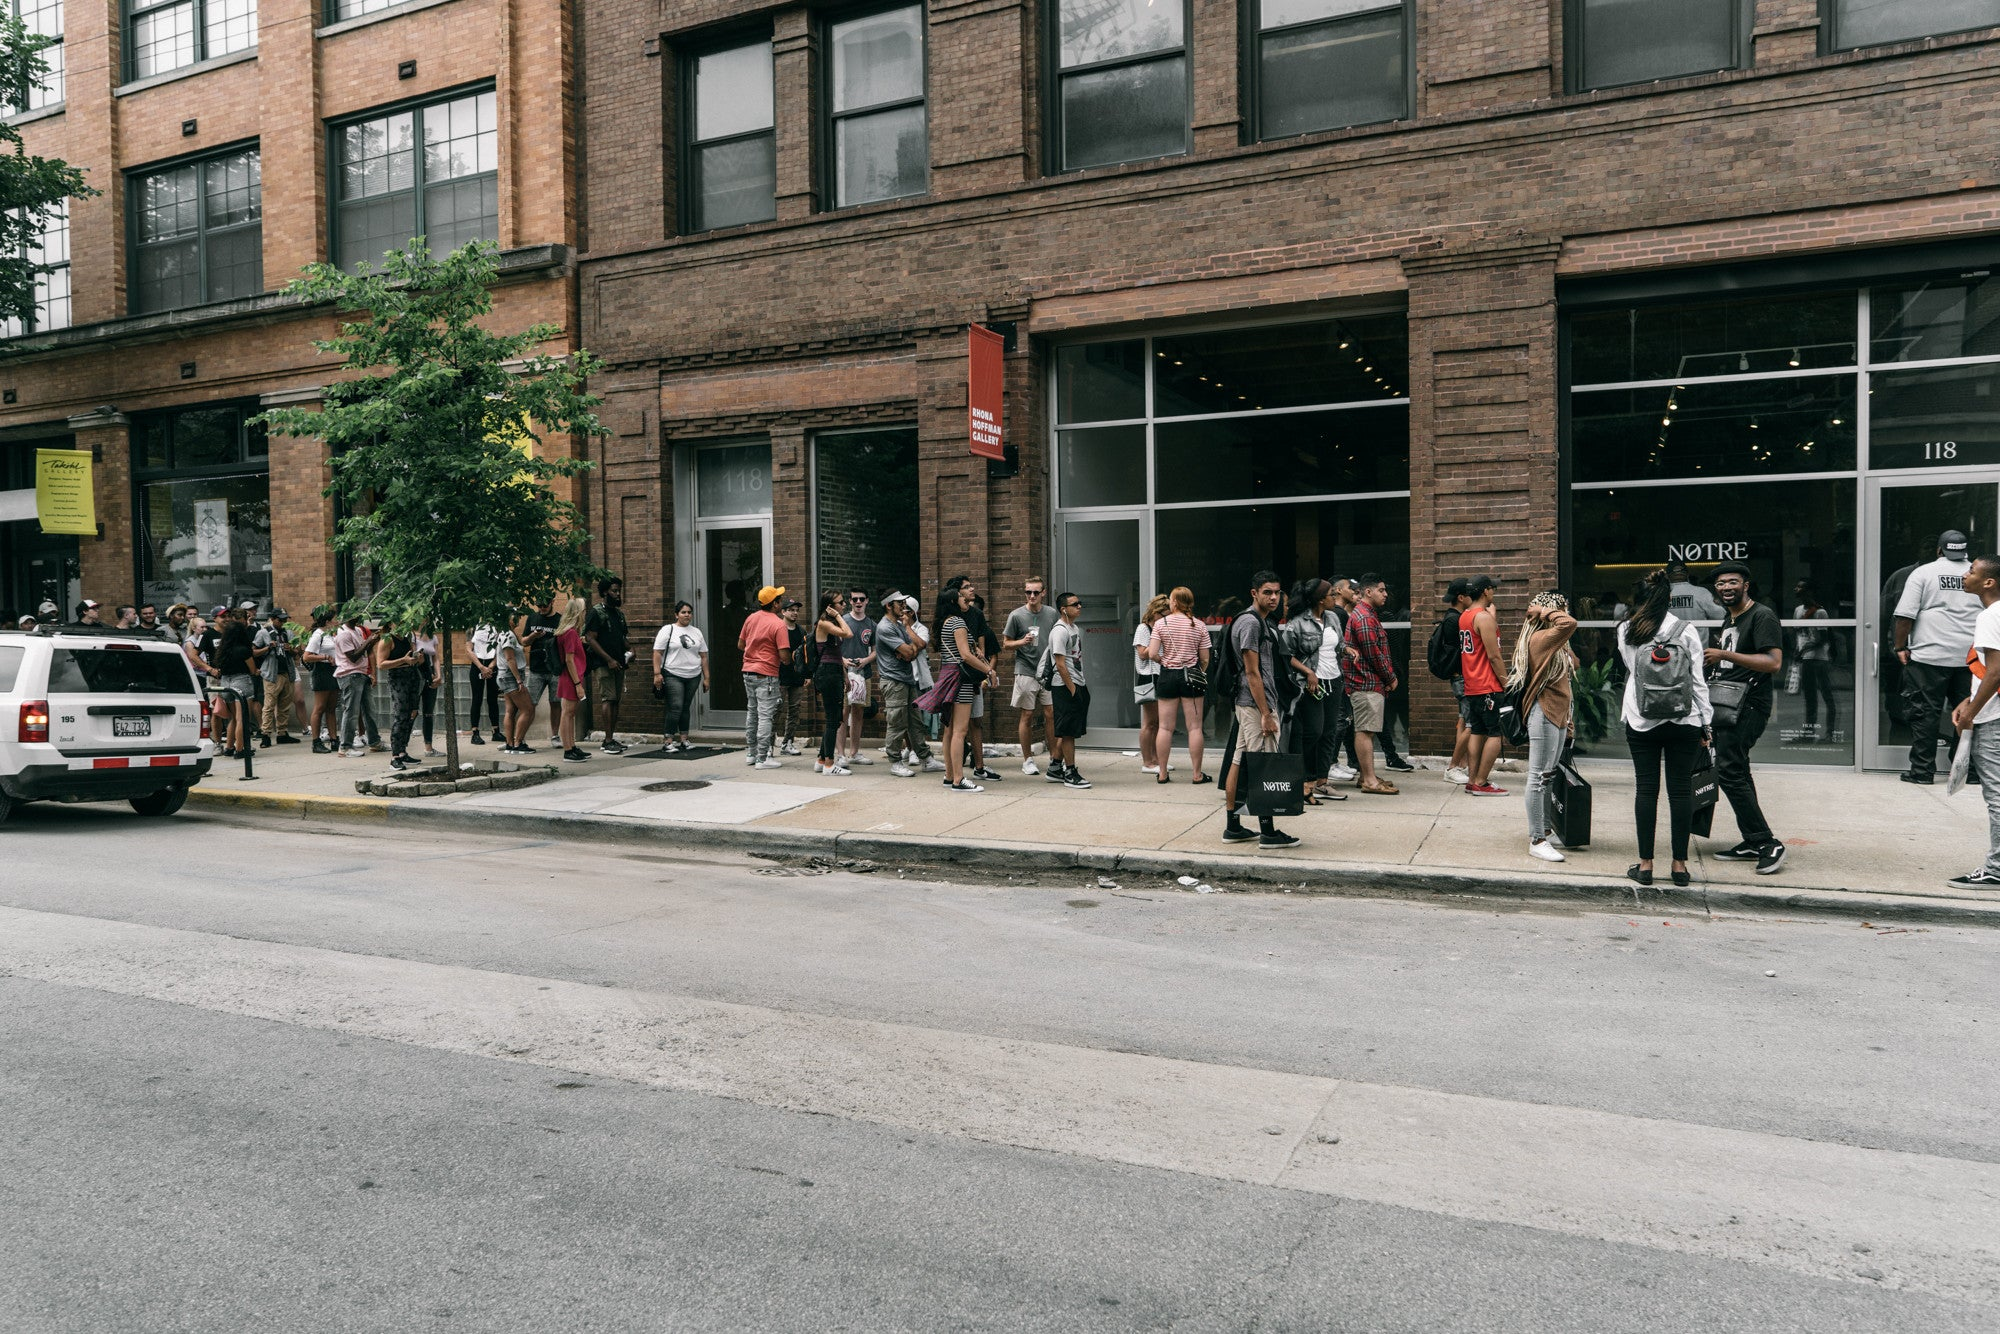 Kendrick Lamar's DAMN. Pop Up at Notre Chicago